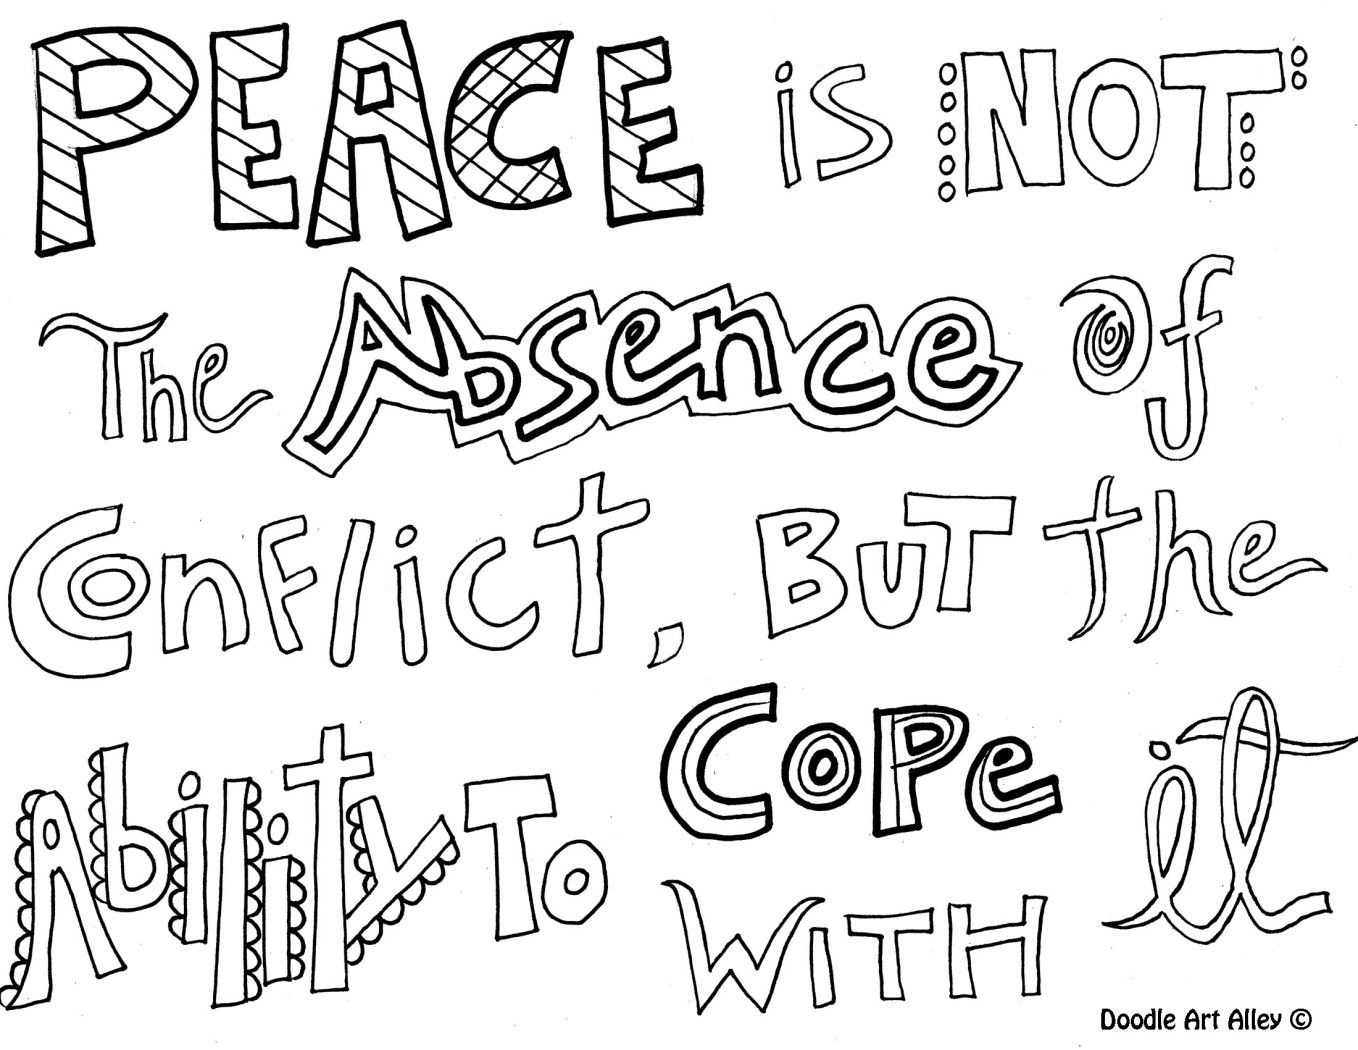 Peaceconflict Jpg Inspirational Quotes Coloring Quote Coloring Pages Coloring Pages